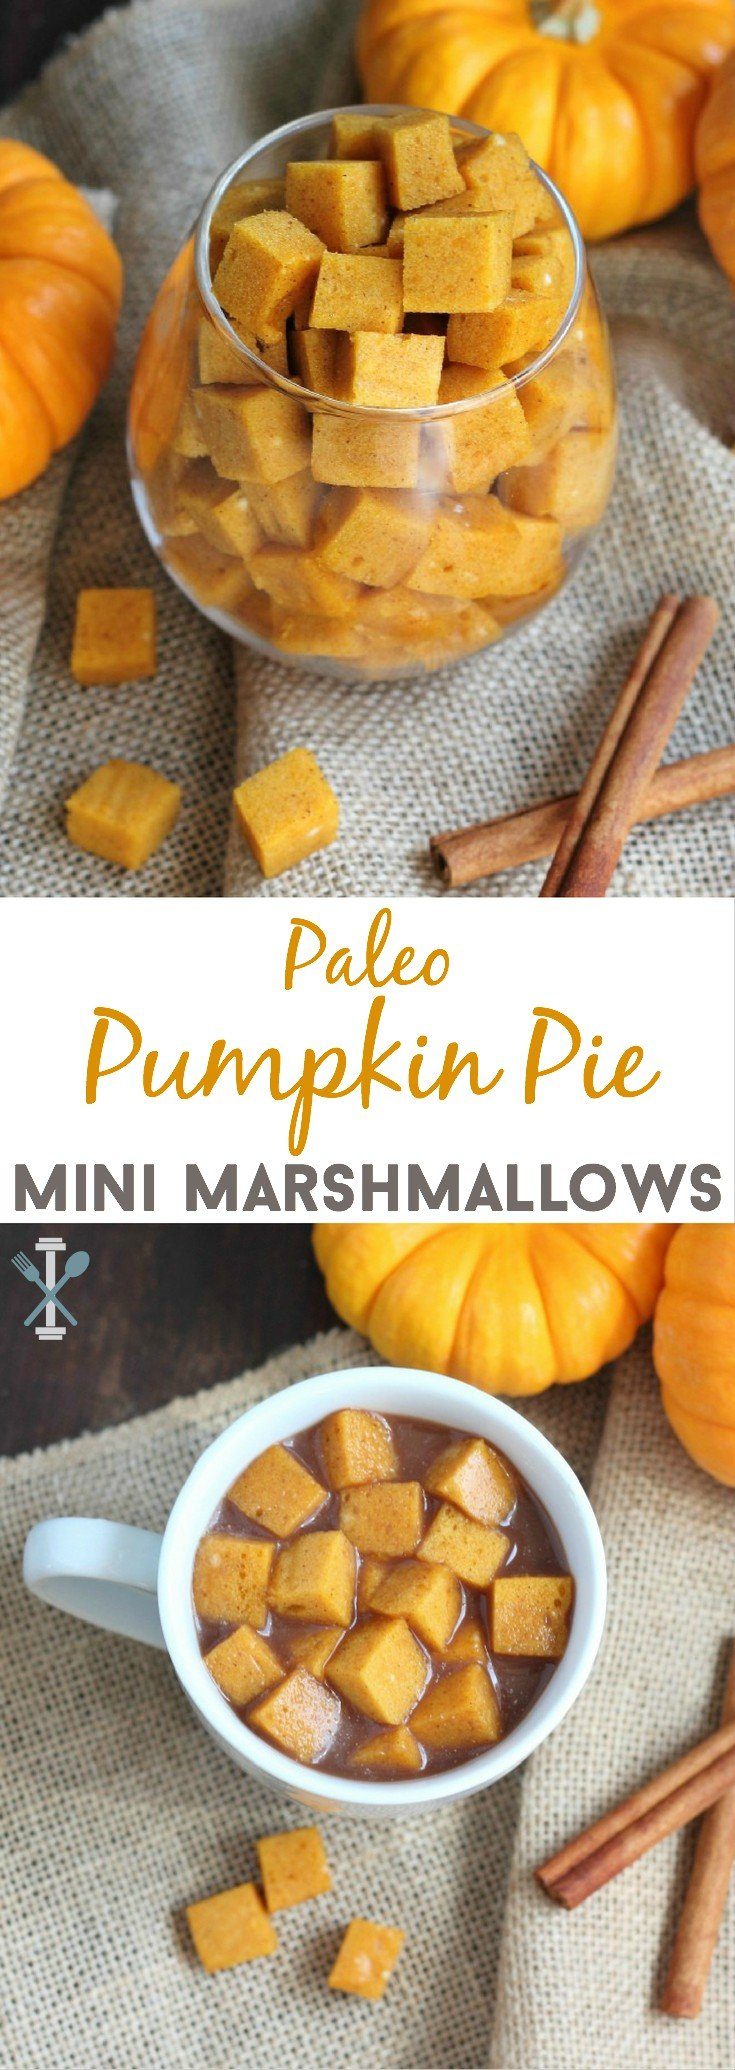 A healthy take on a favorite fall flavor. Put these paleo pumpkin pie mini marshmallows in your hot chocolate, coffee, or eat on their own. Made with Vital Proteins collagen protein. #sponsored